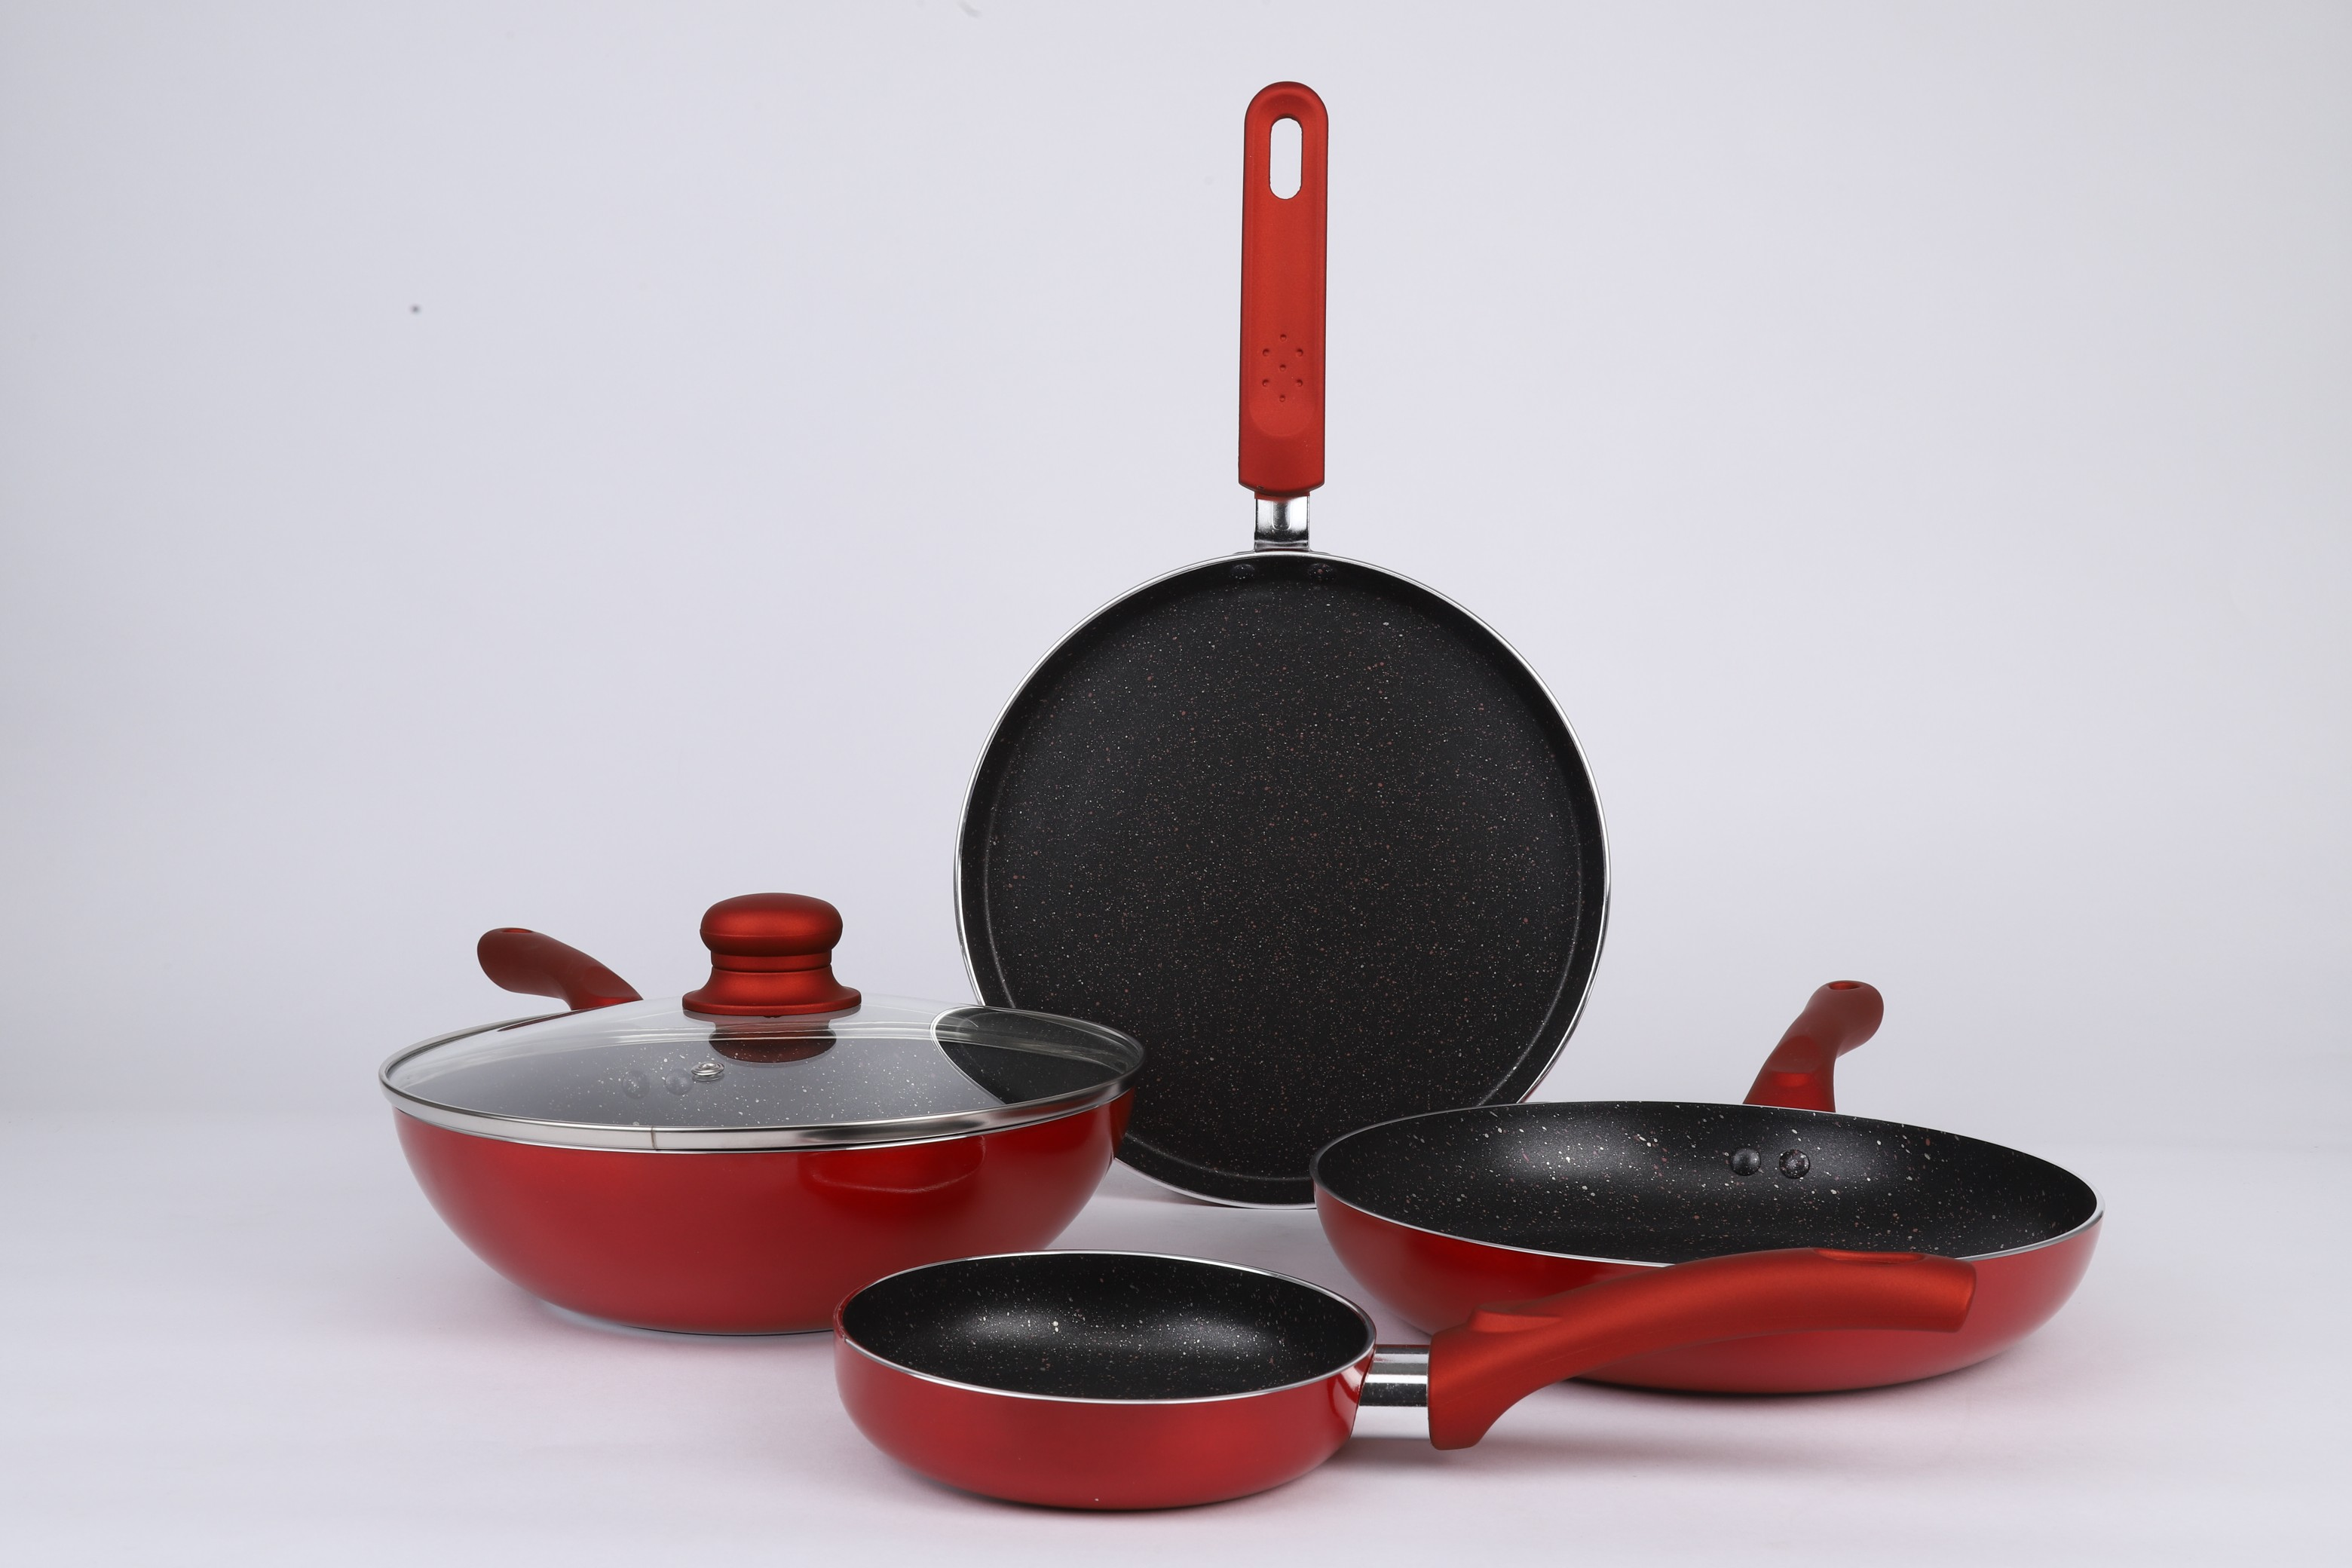 Vikas Khanna 5 pc Esprit cookware set Red Stainless steel cookware sets in Red Colour by Bergner